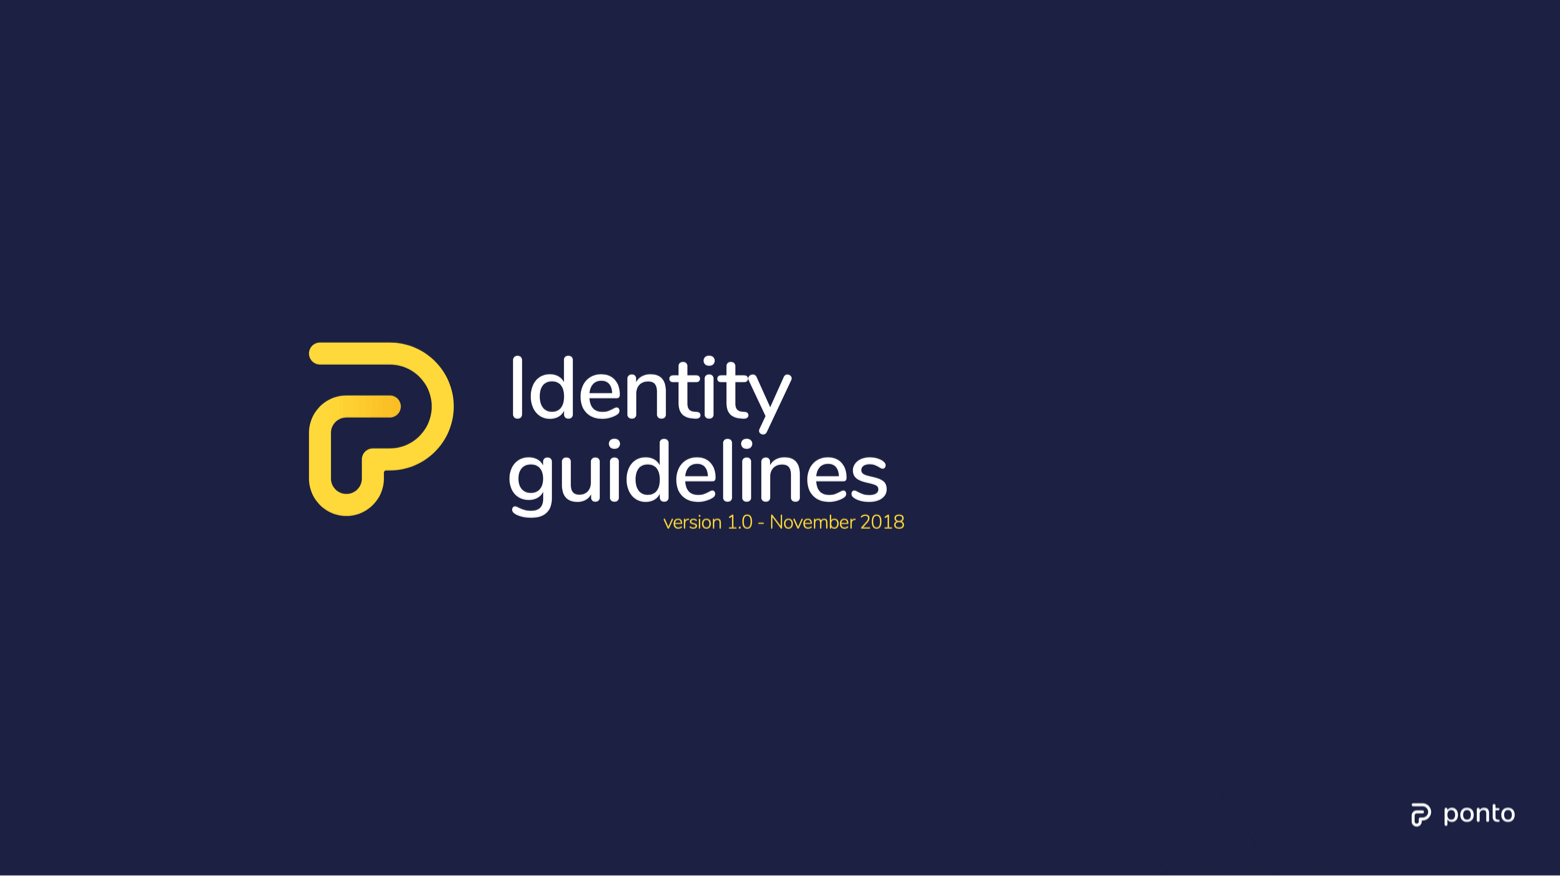 Ponto identity guidelines - cover showing logo and version